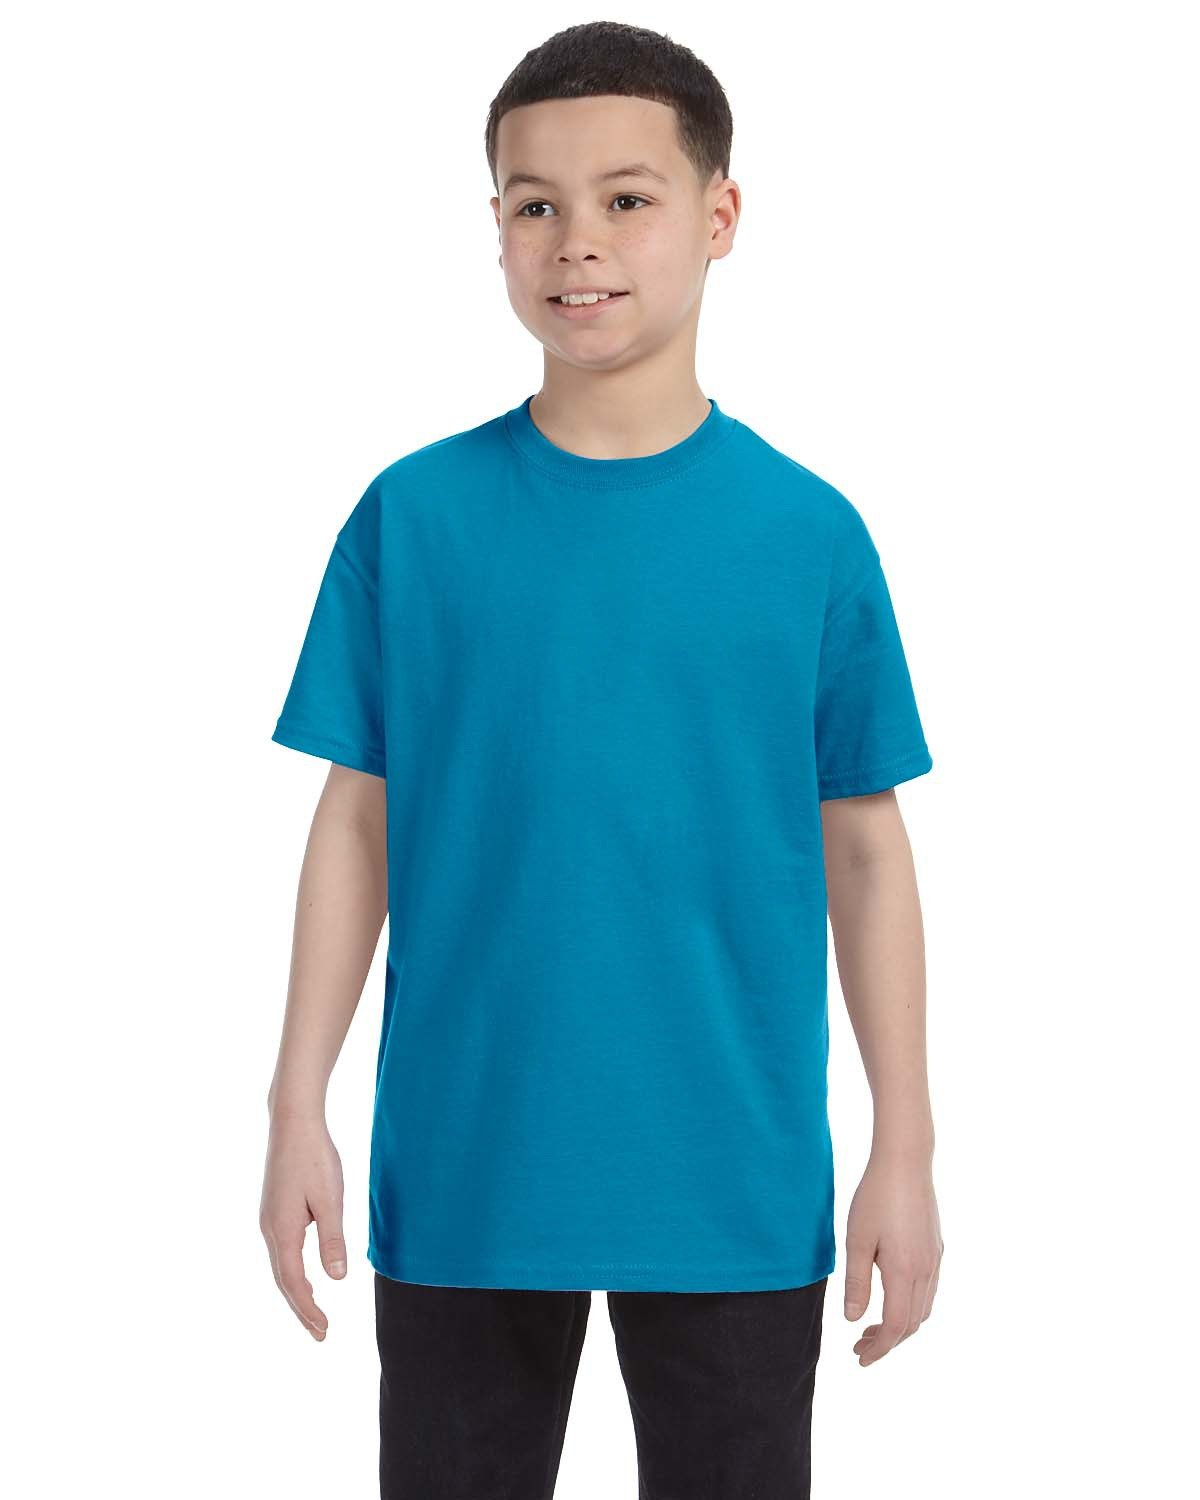 Hanes Youth Authentic-T T-Shirt TEAL